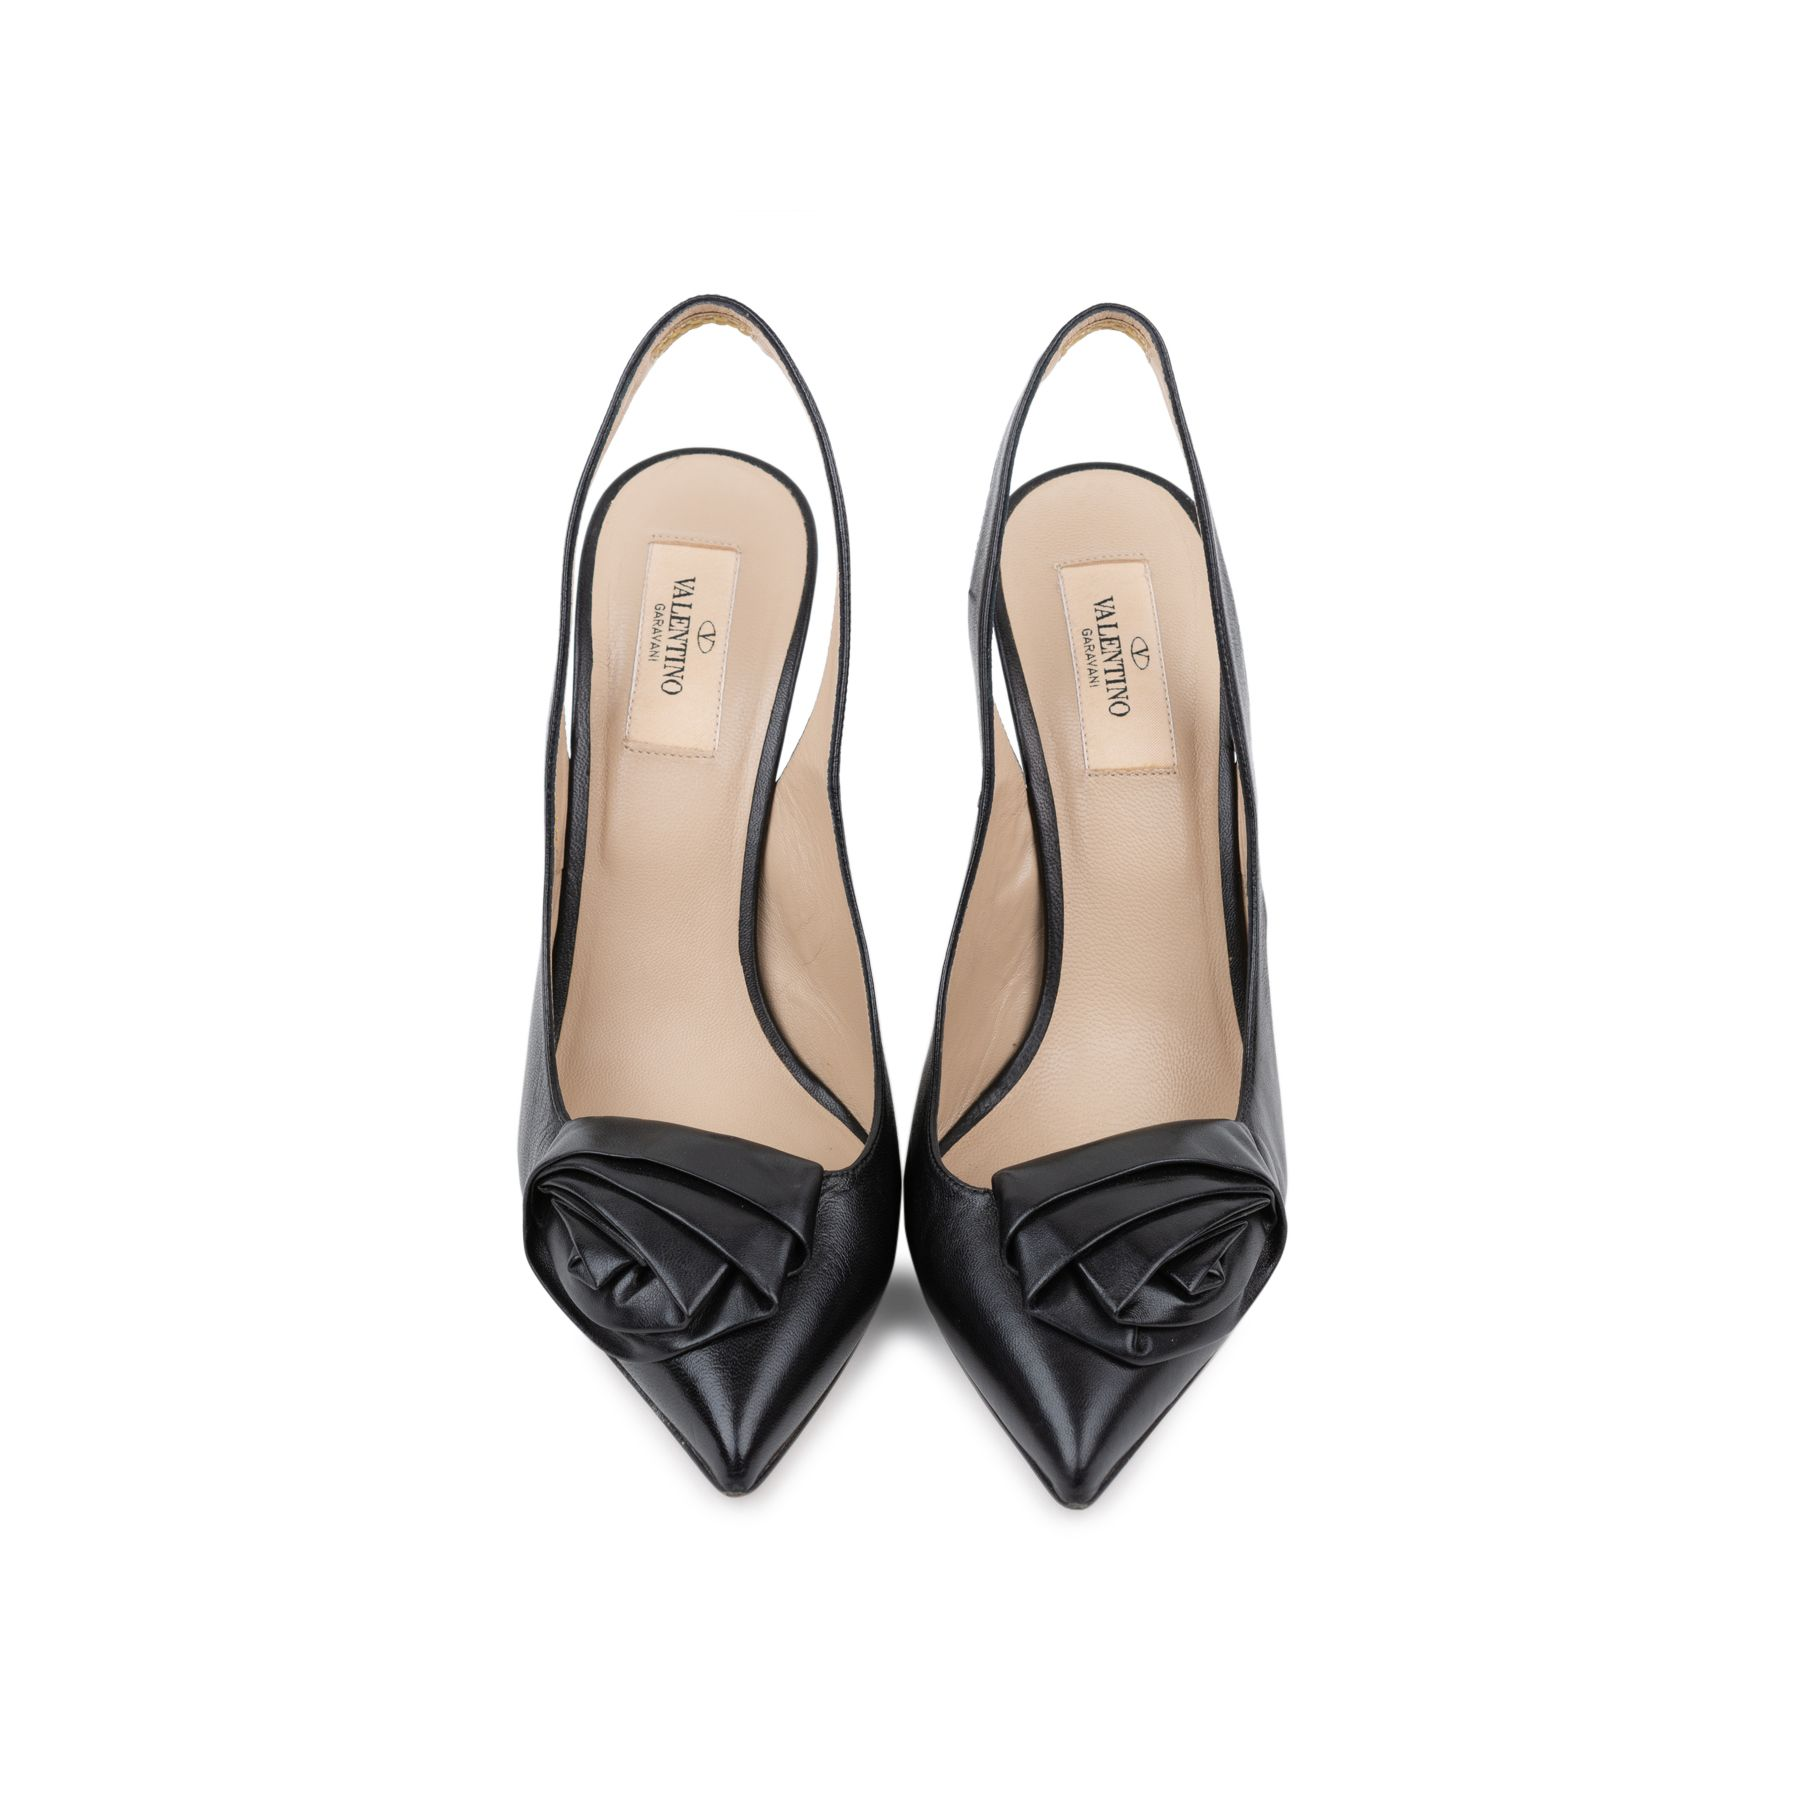 7b63306d5f4 Authentic Pre Owned Valentino Rosette Sling Back Pumps (PSS-240-00255).  Free international shipping